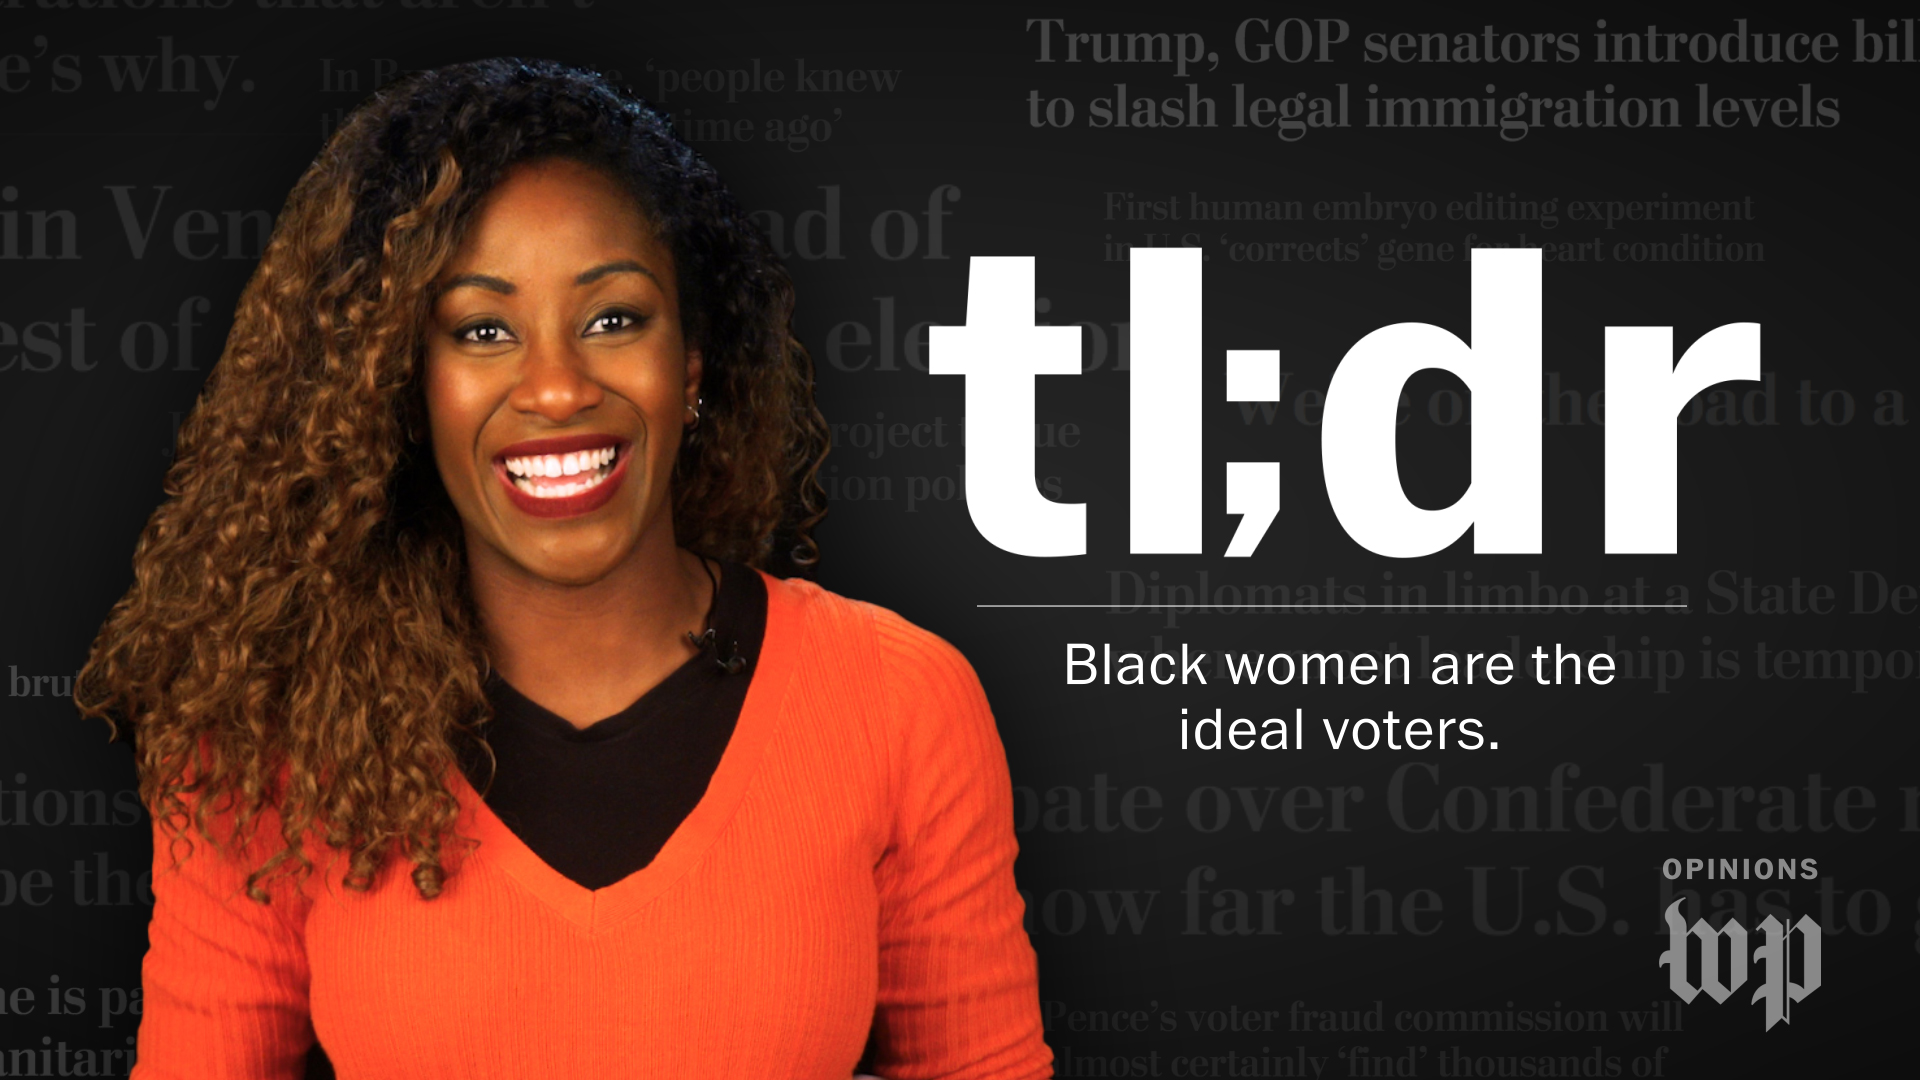 Mia Love: Republicans have failed to bring our message to minorities. It's hurting the nation.